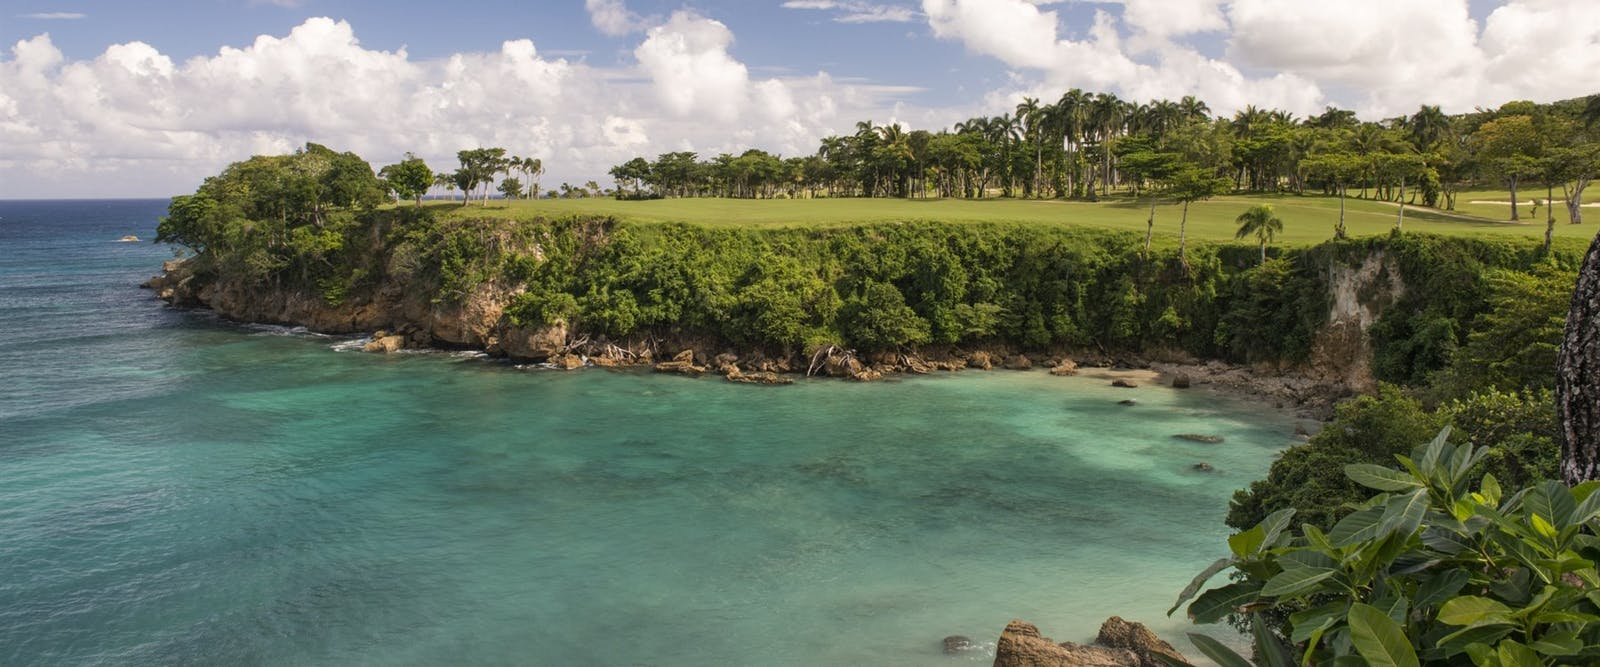 Playa Grande Golf Course at Amanera, Dominican Republic